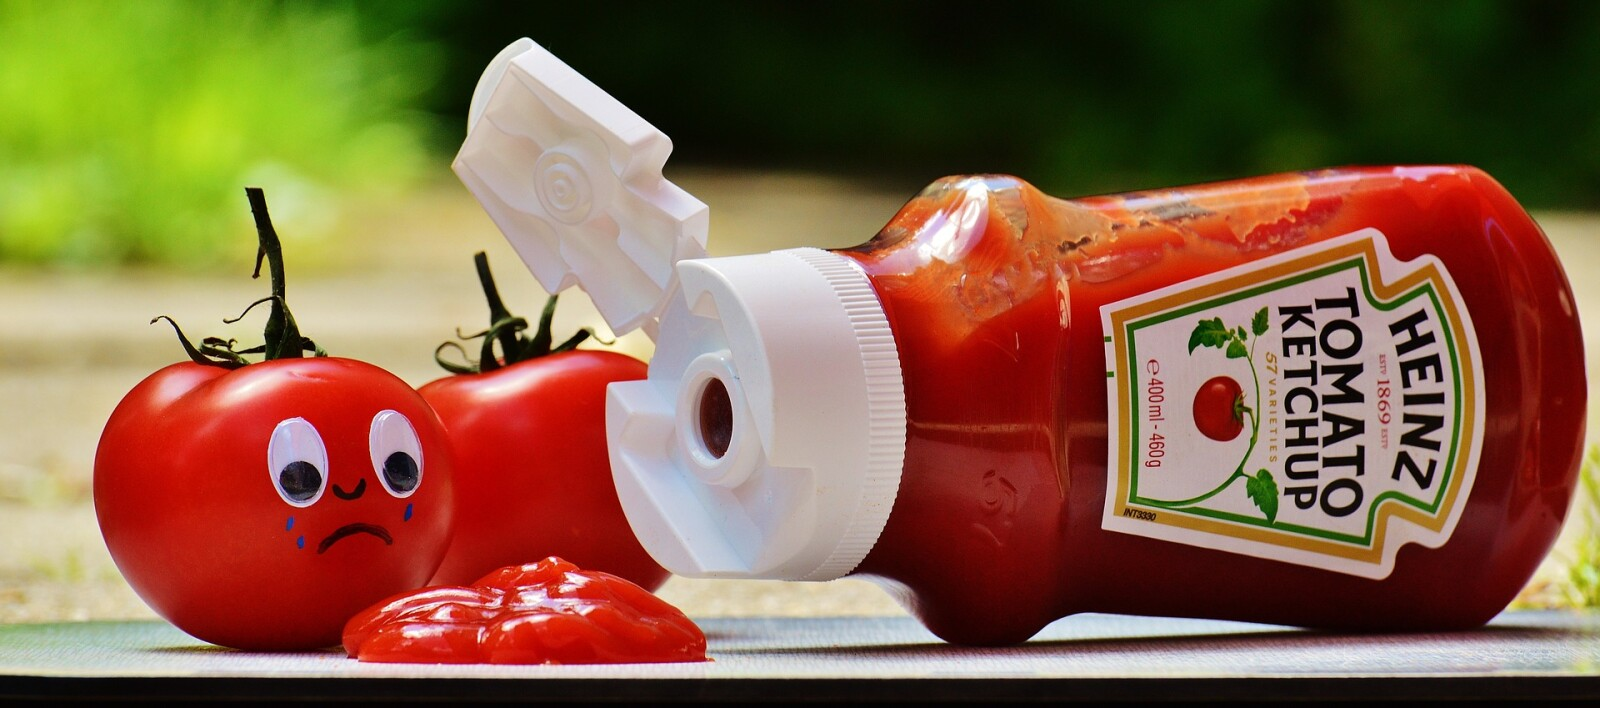 When Life Throws You Lemons .... Make Ketchup!!